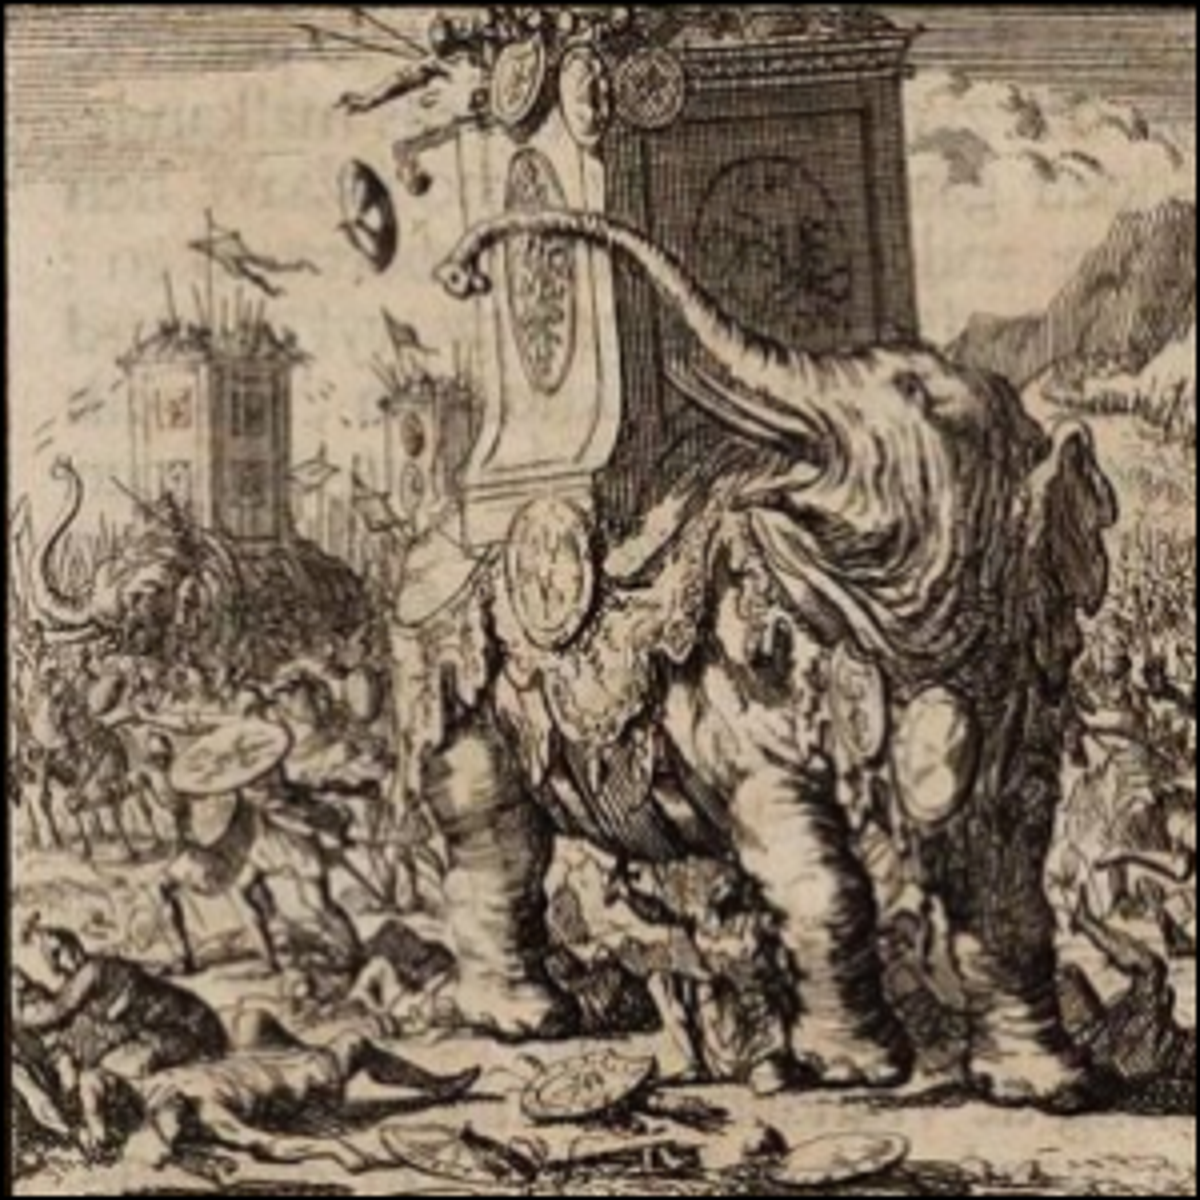 War elephants being used in an ancient battle.